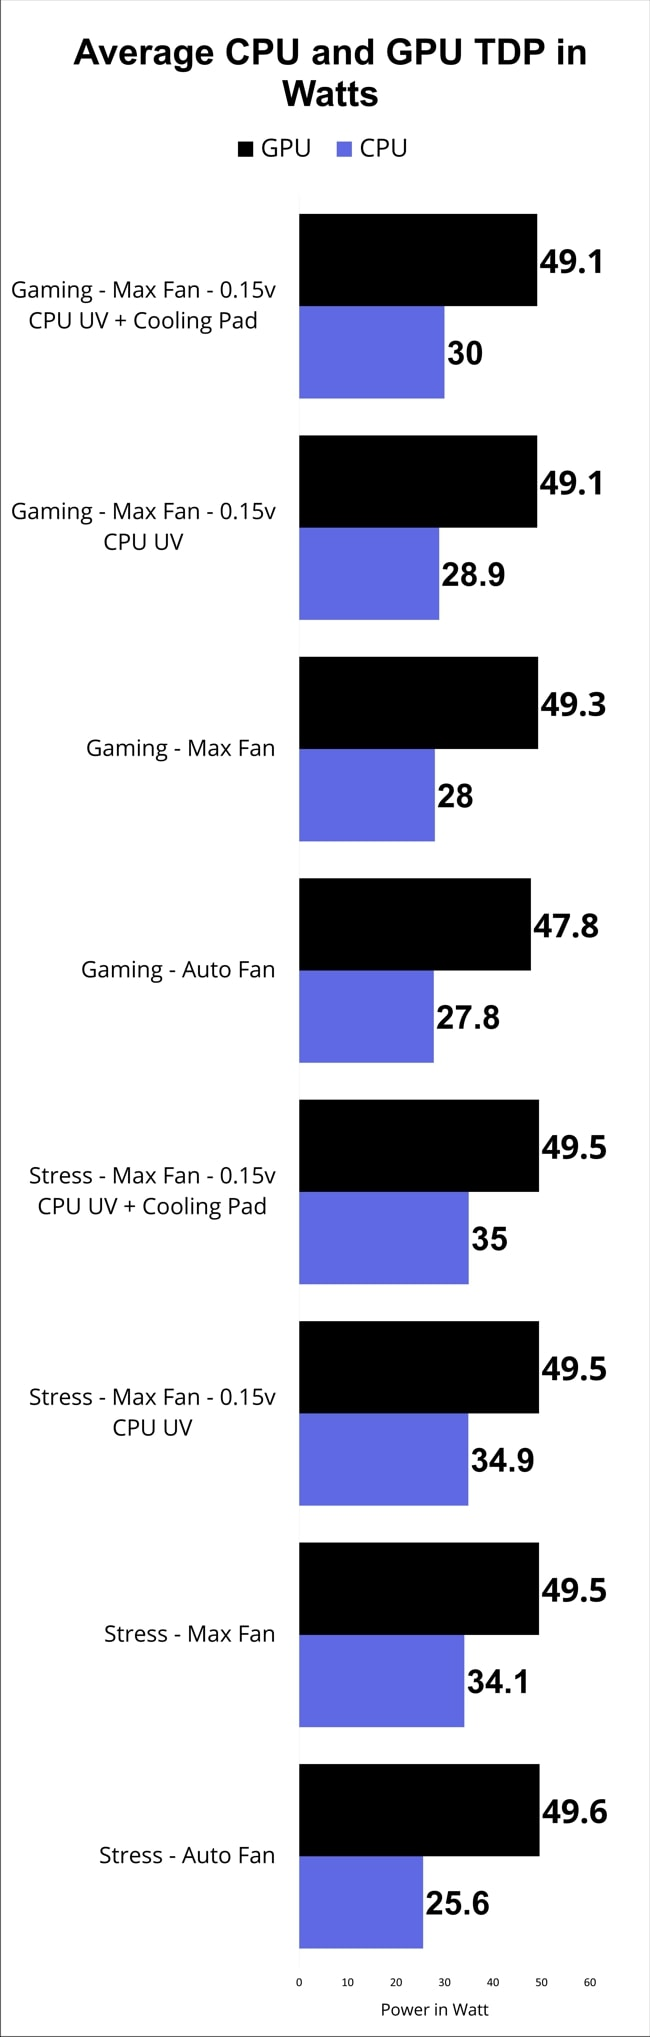 Average CPU and GPU TDP of 3 runs for different modes of stress tests using AIDA64 and gaming tests on Acer Nitro AN515 laptop.